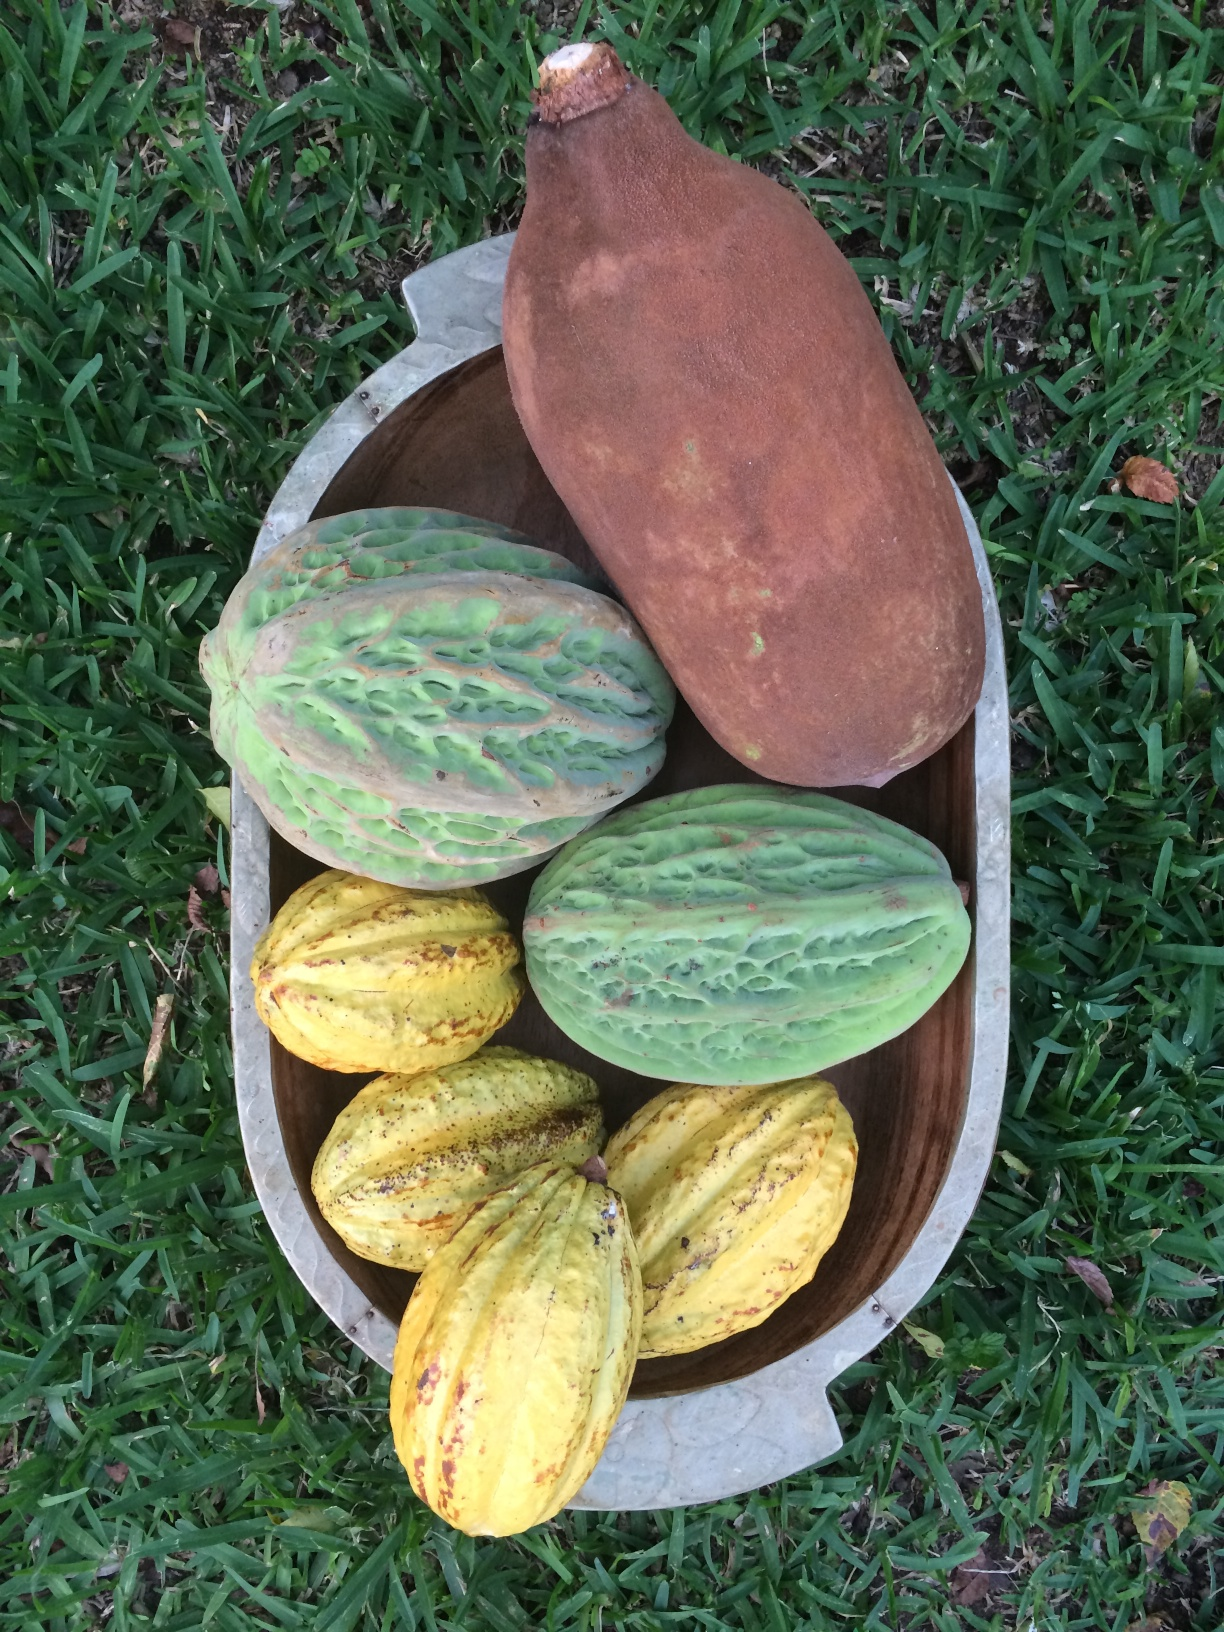 Image from  Izabal Agro Forest . Three kinds of Theobroma. T. grandiflorum (Cupuacu), T. bicolor, and T. cacao (Chocolate).